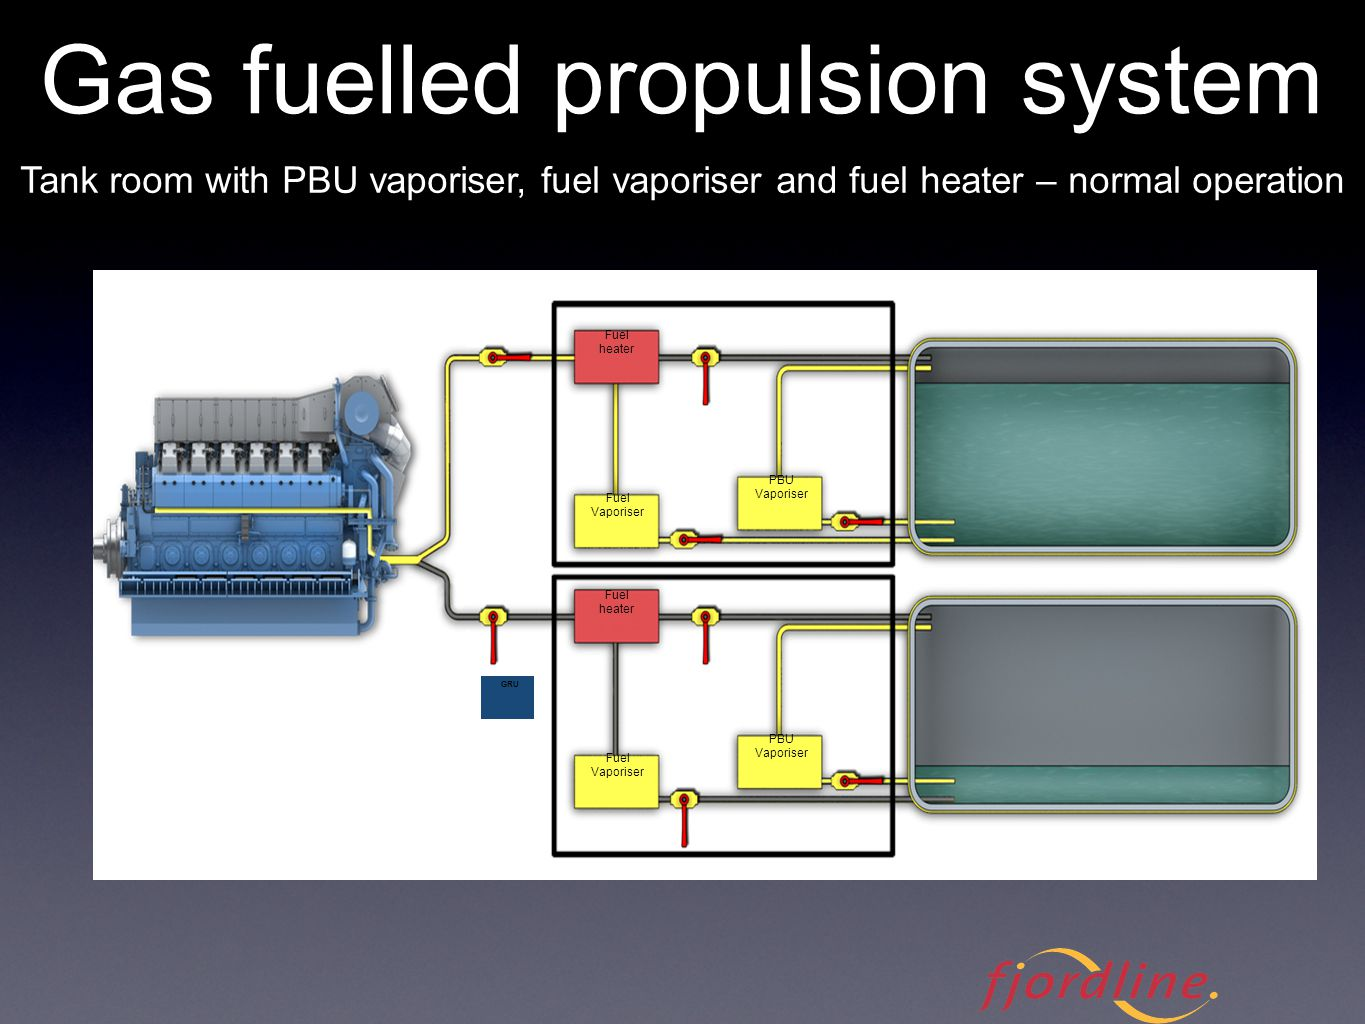 Gas fuelled propulsion system - vaporisation and heating Tank room with PBU vaporiser, fuel vaporiser and fuel heater – normal operation Fuel heater F